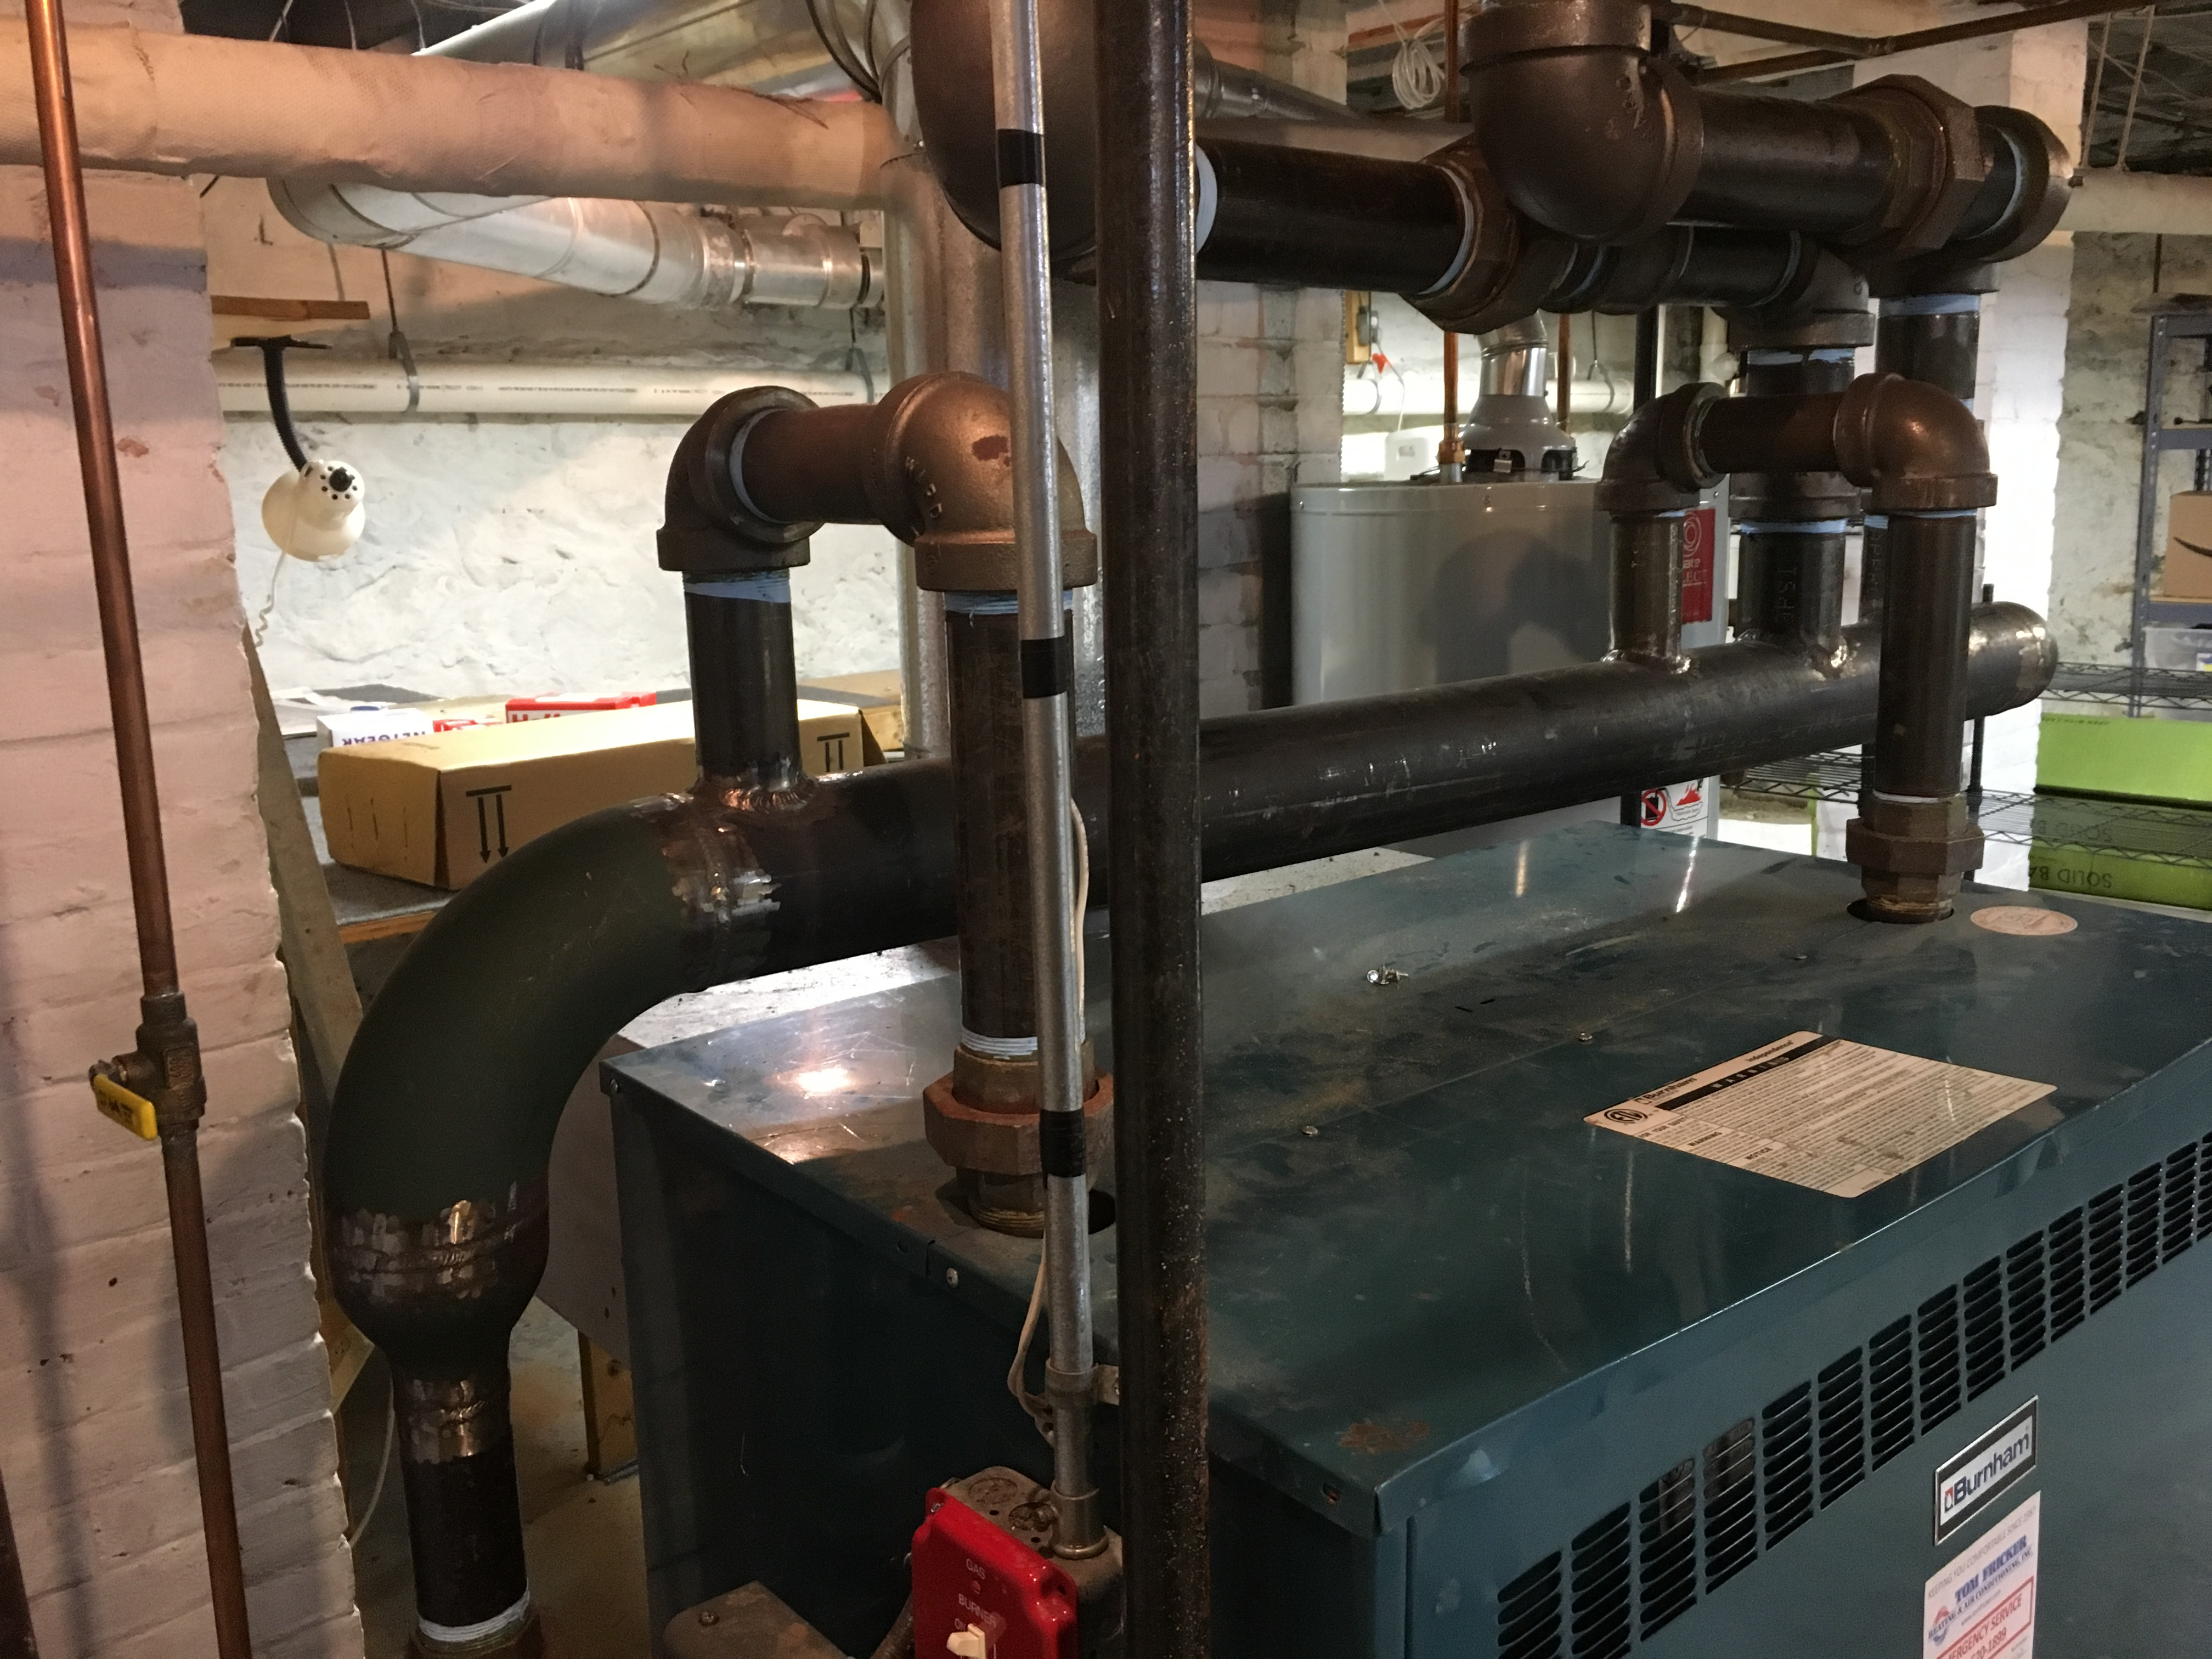 Near Boiler Piping Layout Heating Help The Wall Pictures F3d030b7 14b7 492f 85ea 6c3a993a4134jpeg 2m